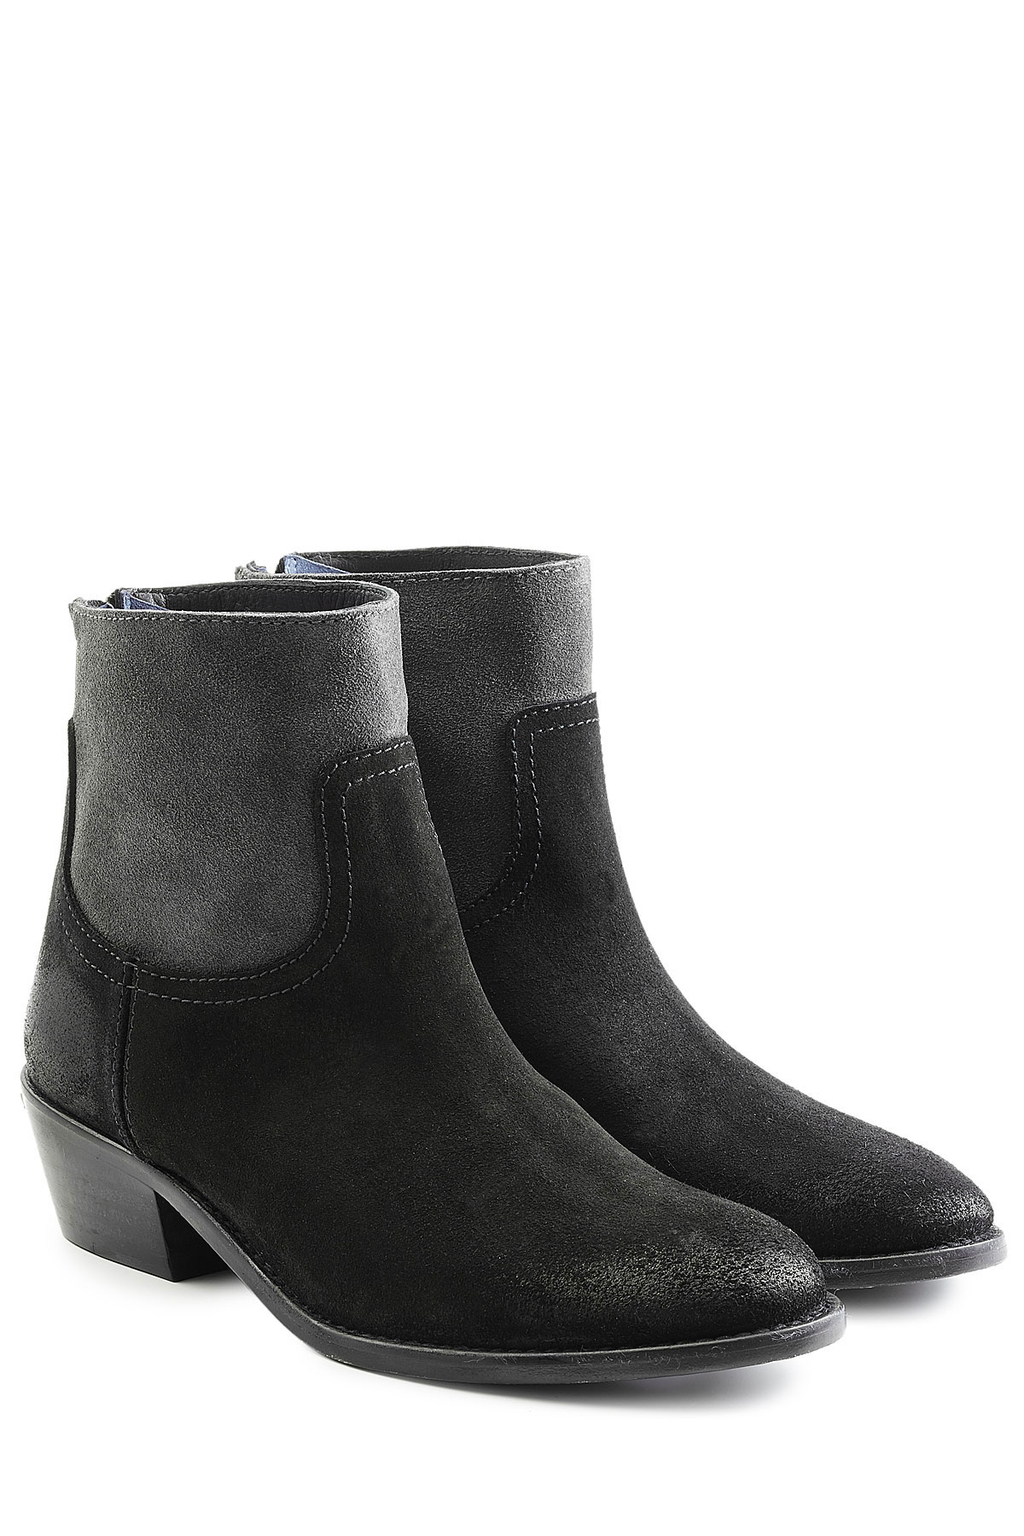 Two Tone Suede Ankle Boots Black - predominant colour: black; occasions: casual; material: suede; heel height: mid; heel: standard; toe: round toe; boot length: ankle boot; style: standard; finish: plain; pattern: plain; season: s/s 2016